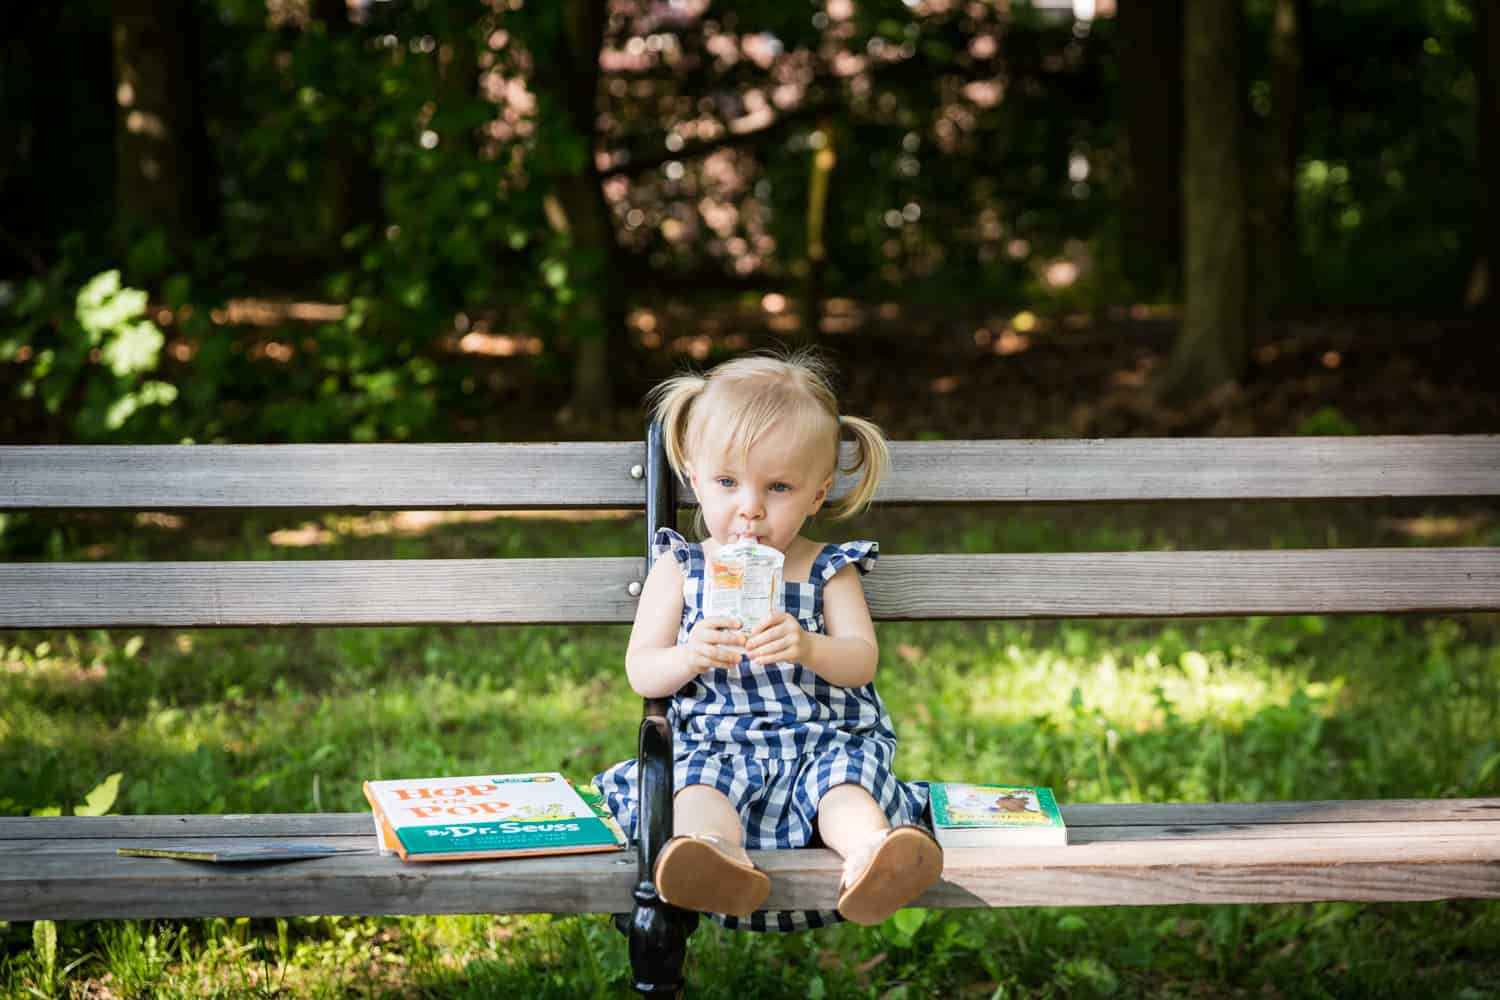 Little girl with pigtails drinking from juice box on bench during a Forest Park family photo shoot